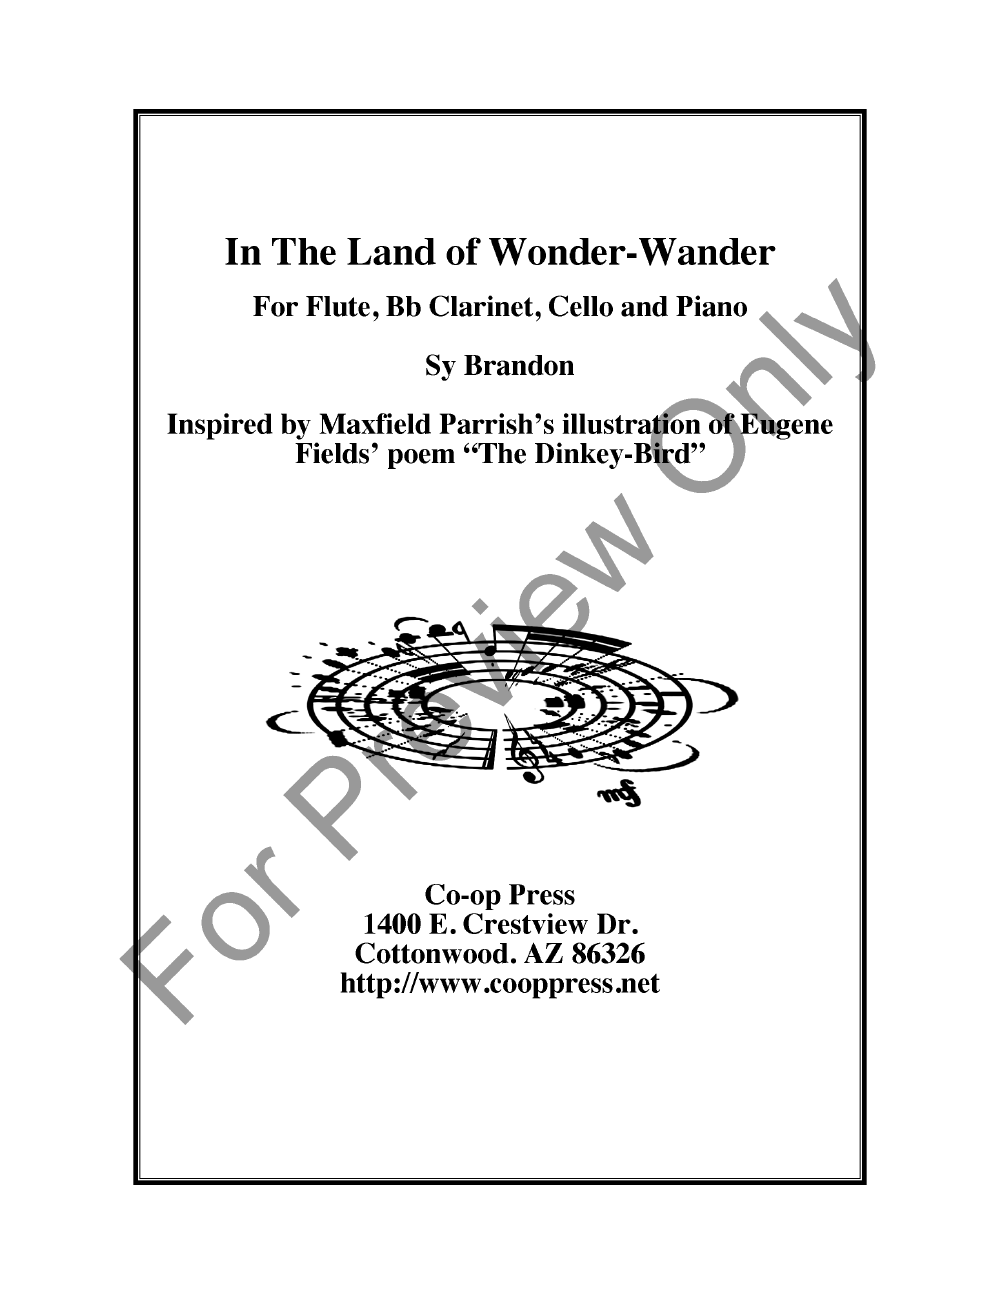 In The Land of Wonder-Wander Thumbnail